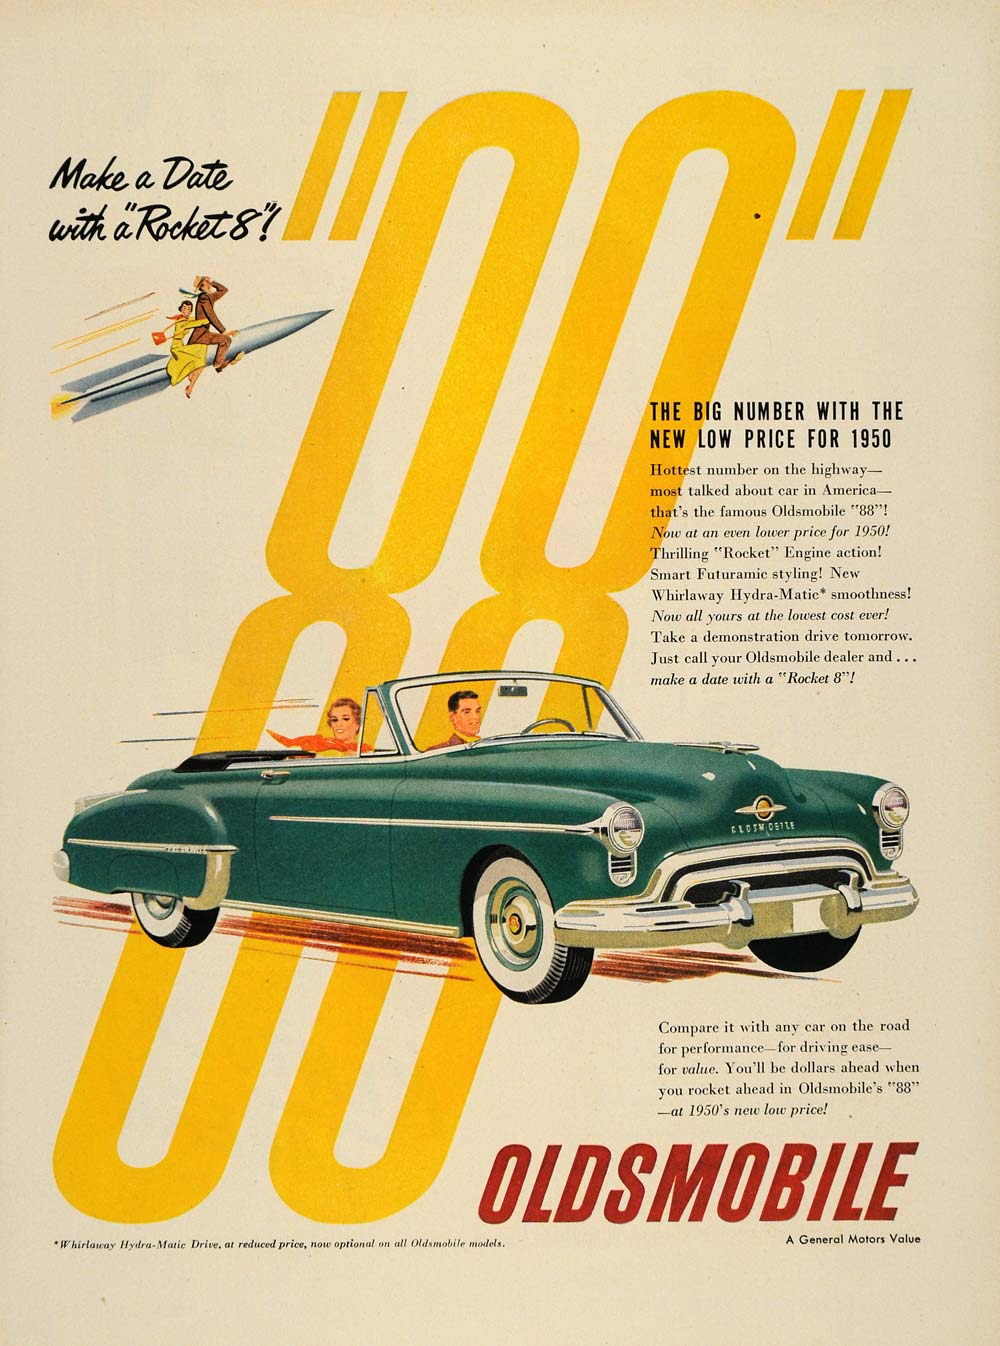 1950 Ad Oldsmobile 88 Rocket Vintage Hydra-Matic Drive